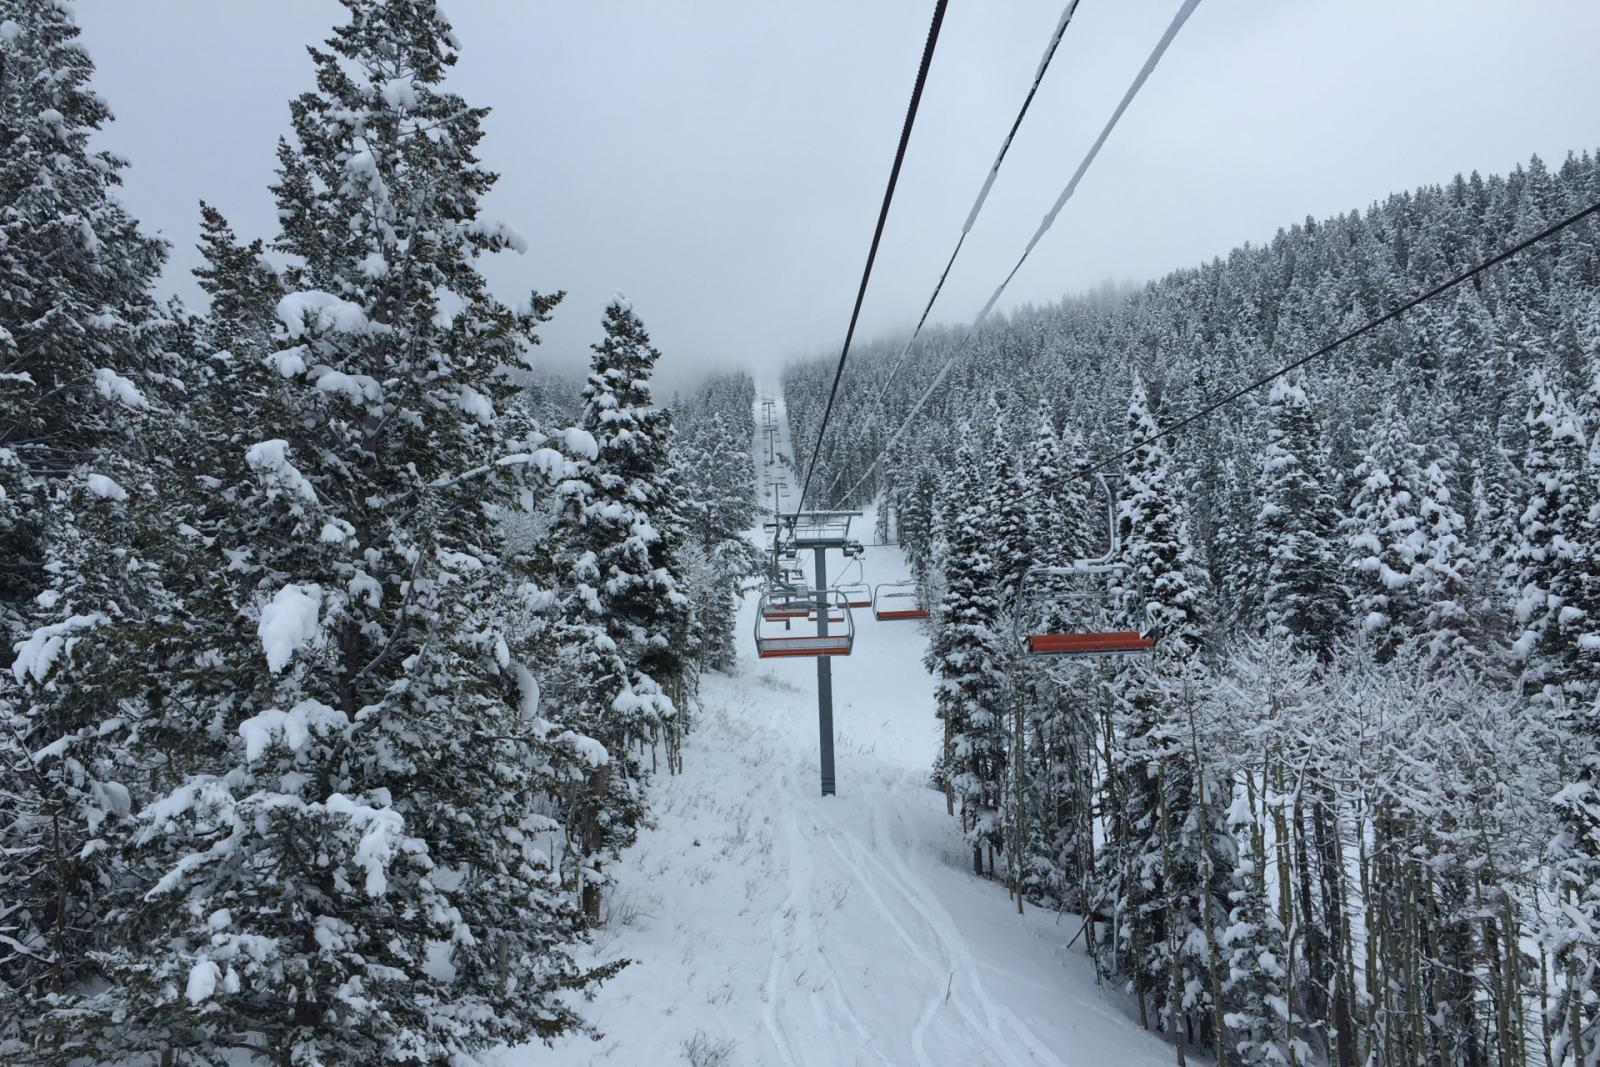 Ski lifts going up a snowy mountain